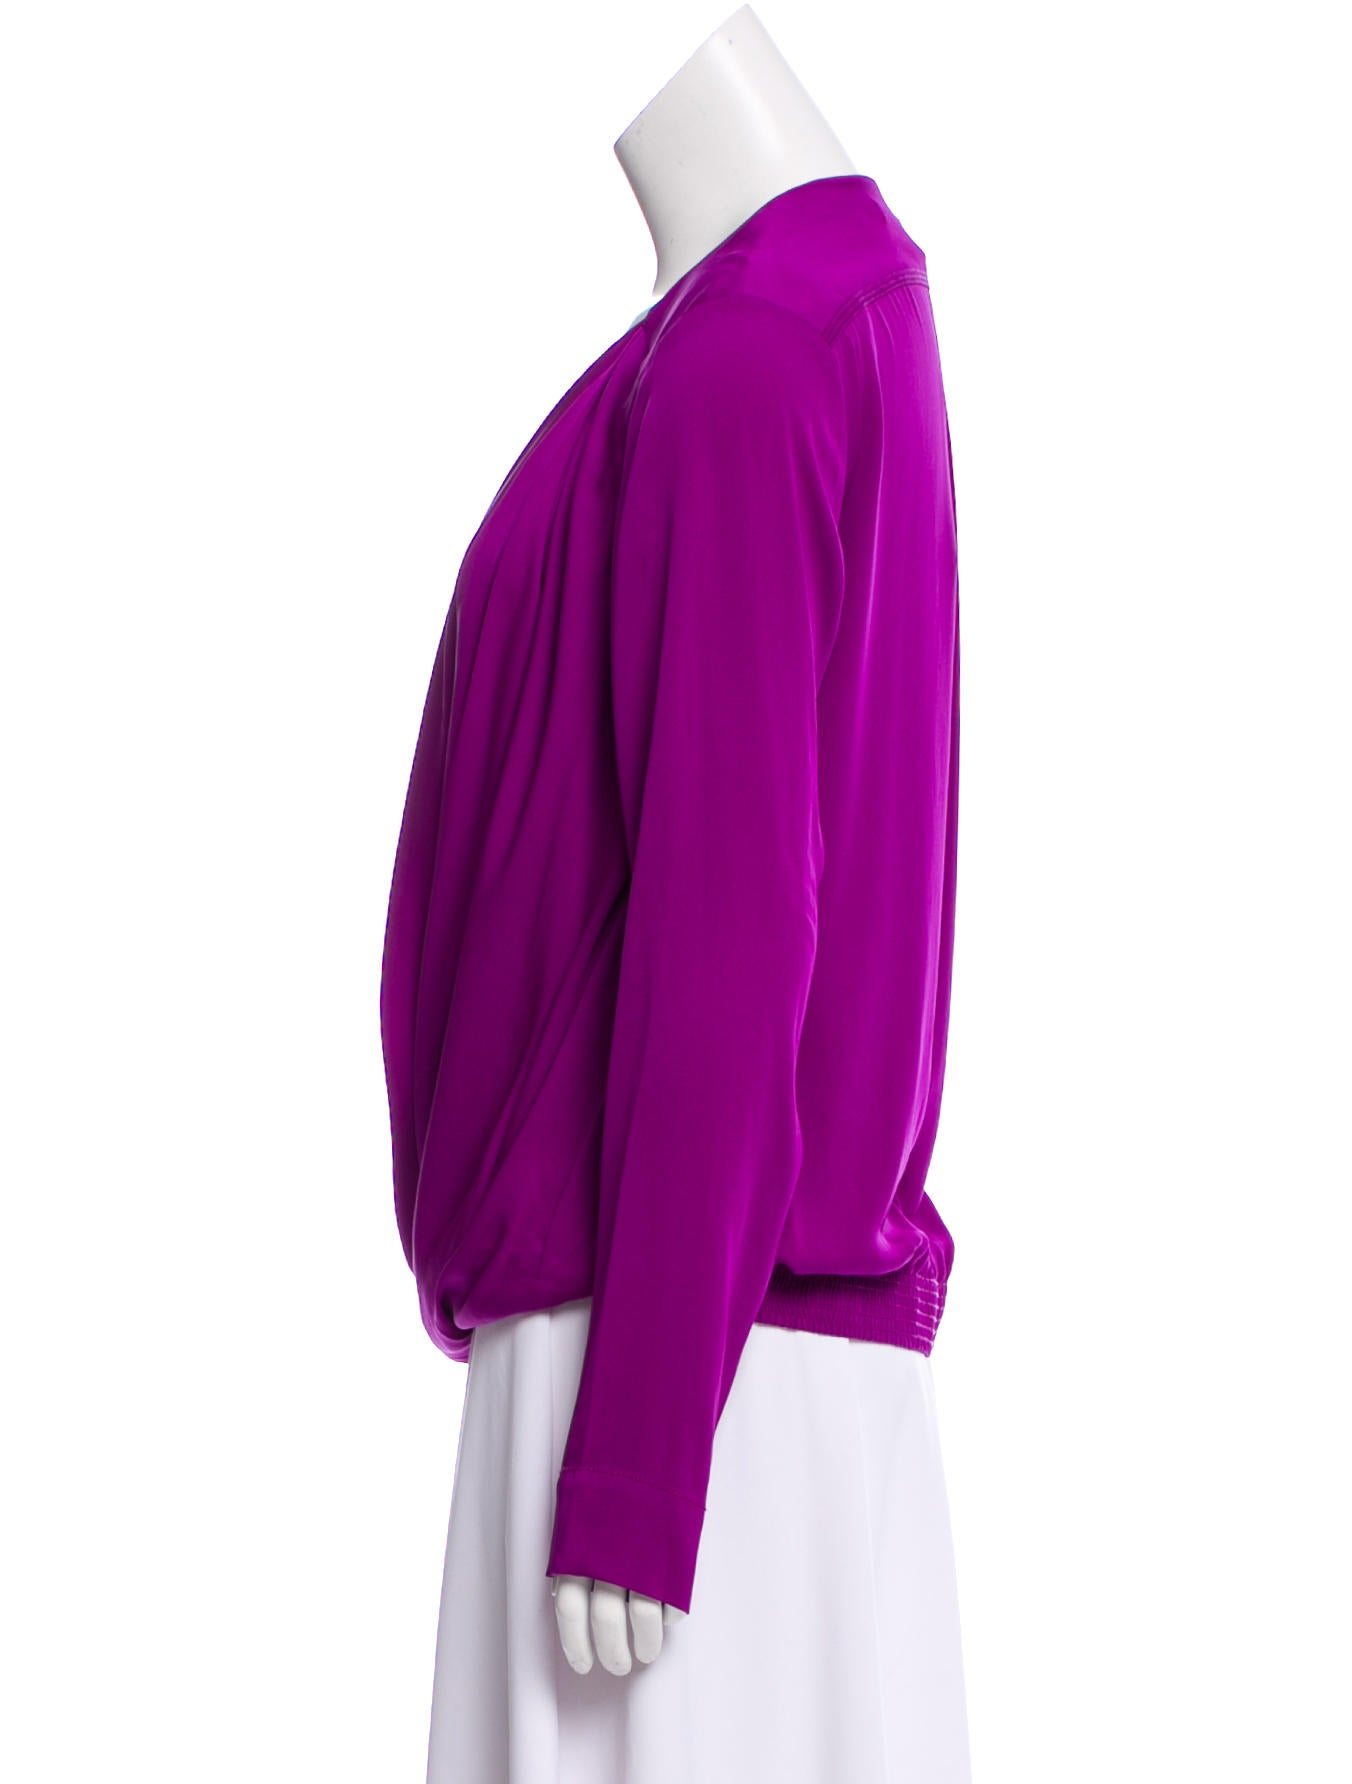 Diane von Furstenberg Surplice Neckline New Issie Two L/S Top w/ Tags Pay With Paypal Cheap Online Recommend Cheap Price ueSNF